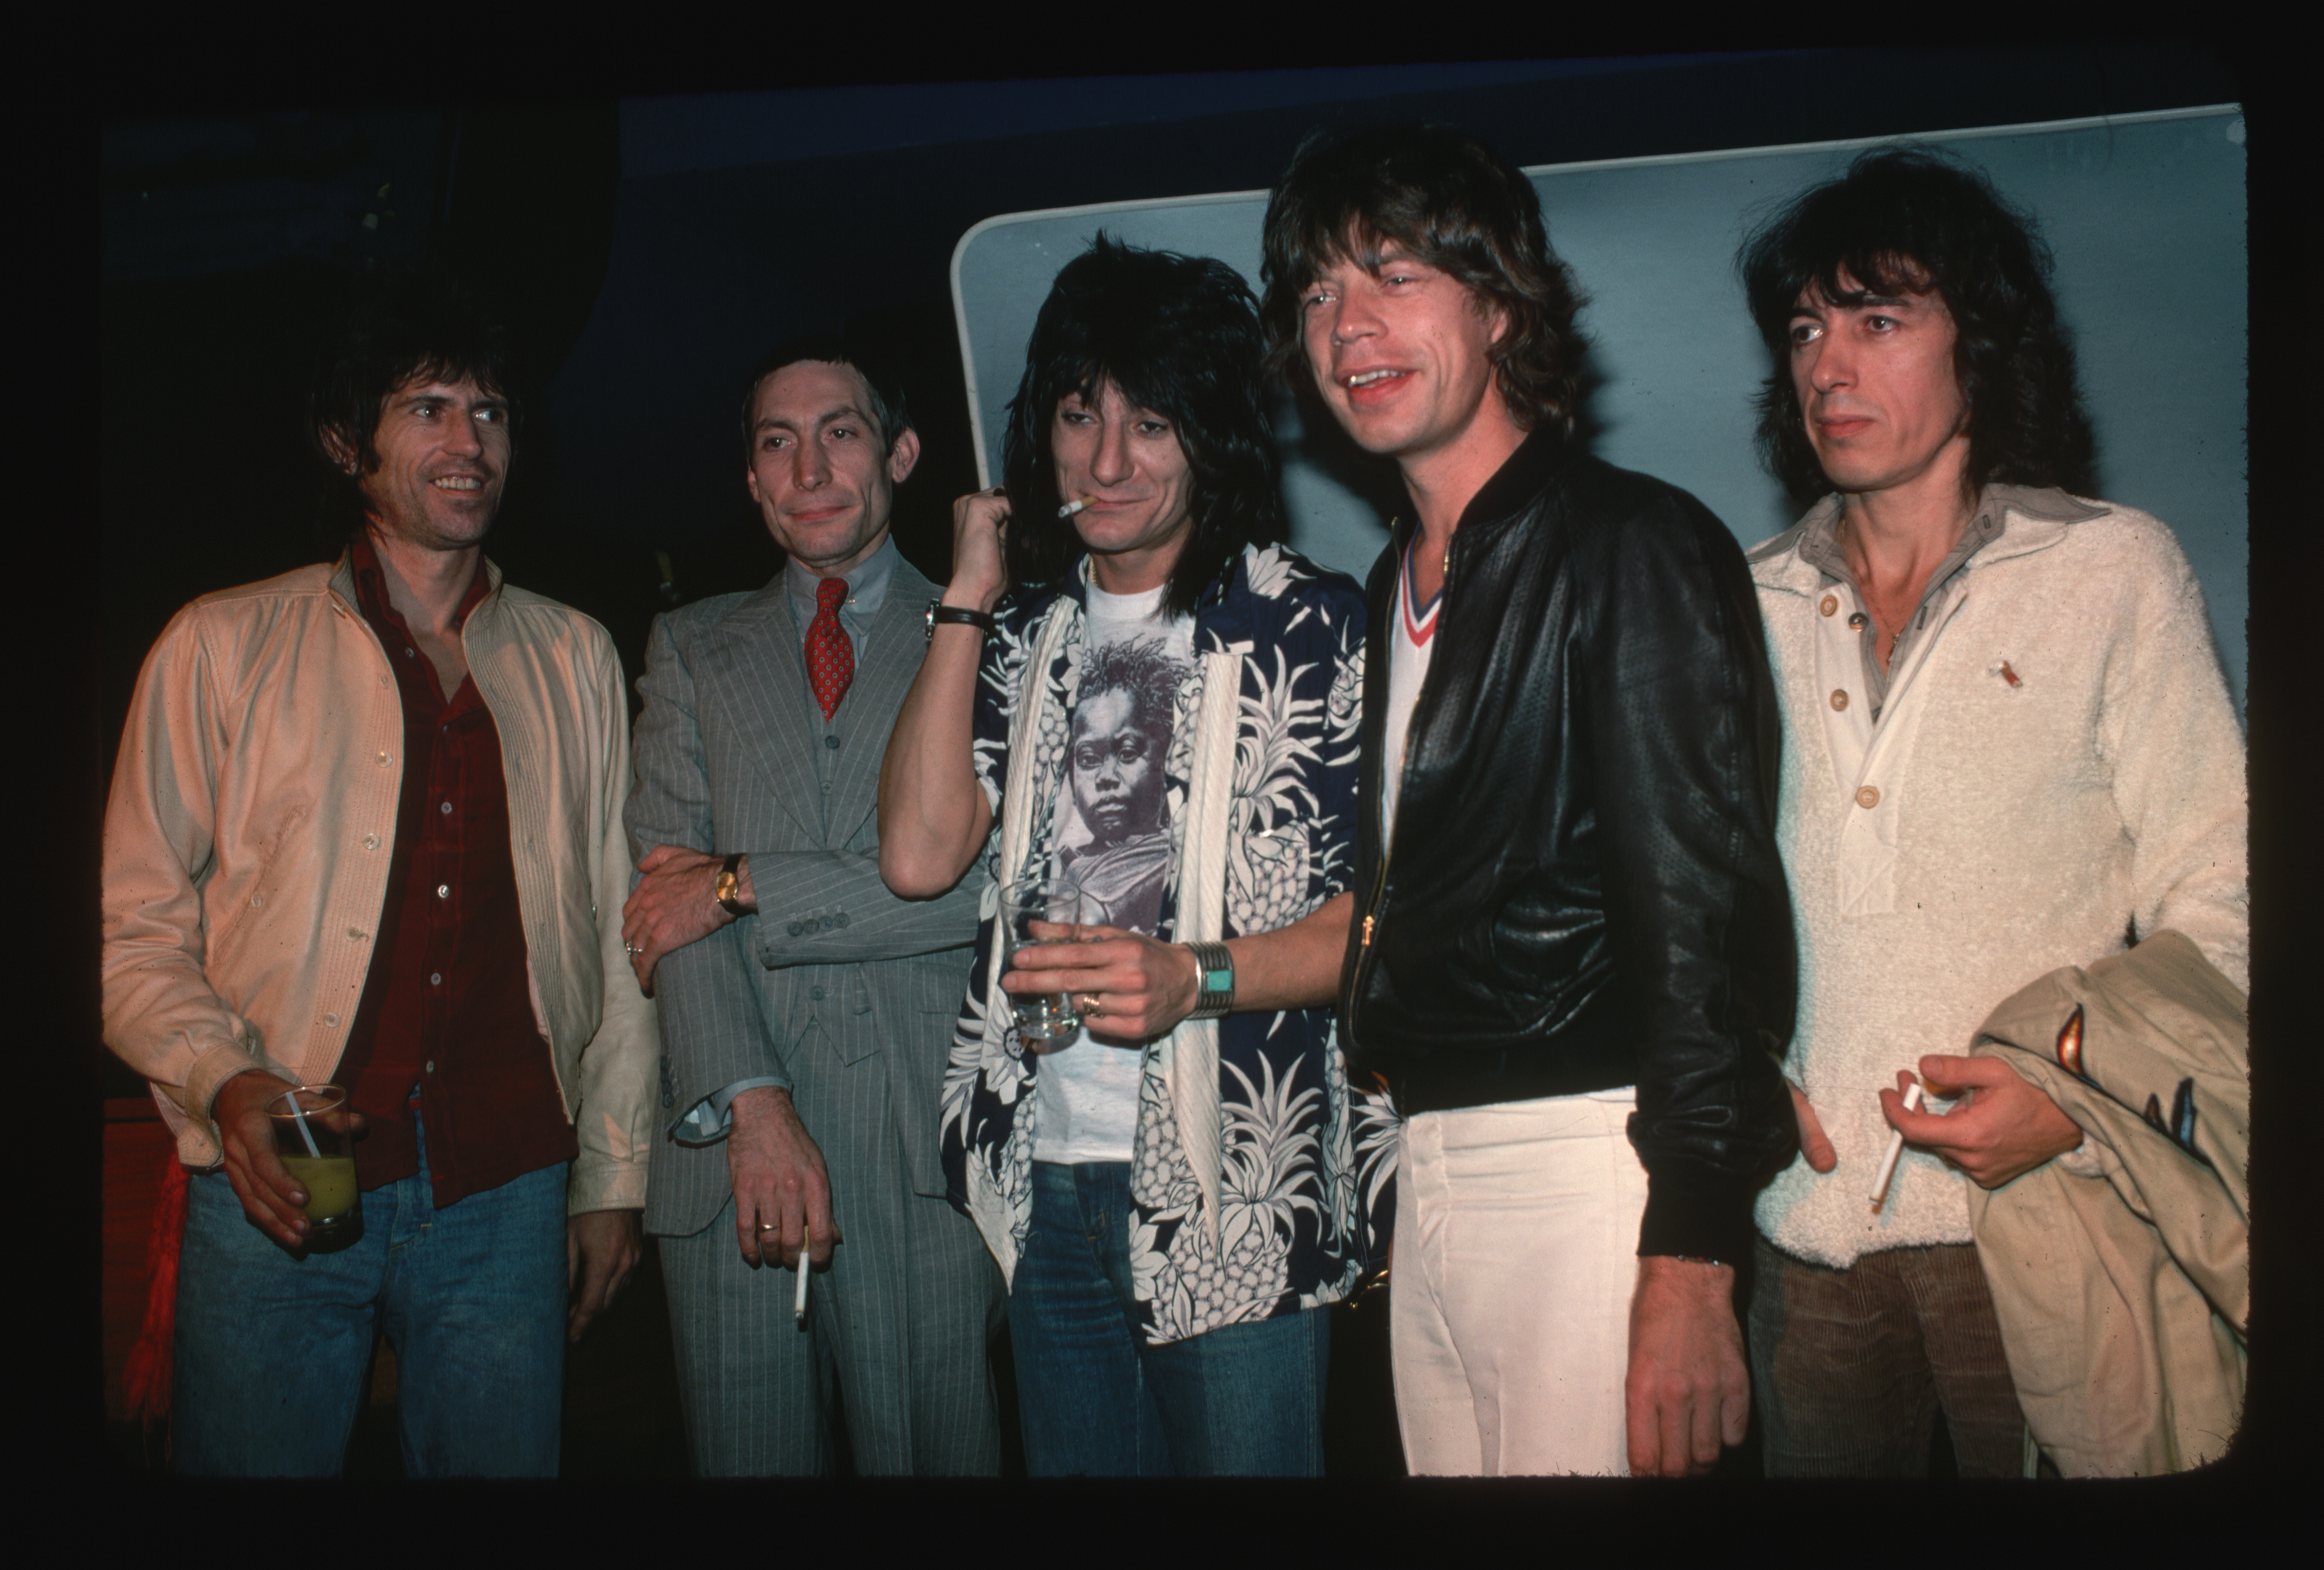 rolling stones, with charlie watts in a double breasted suit